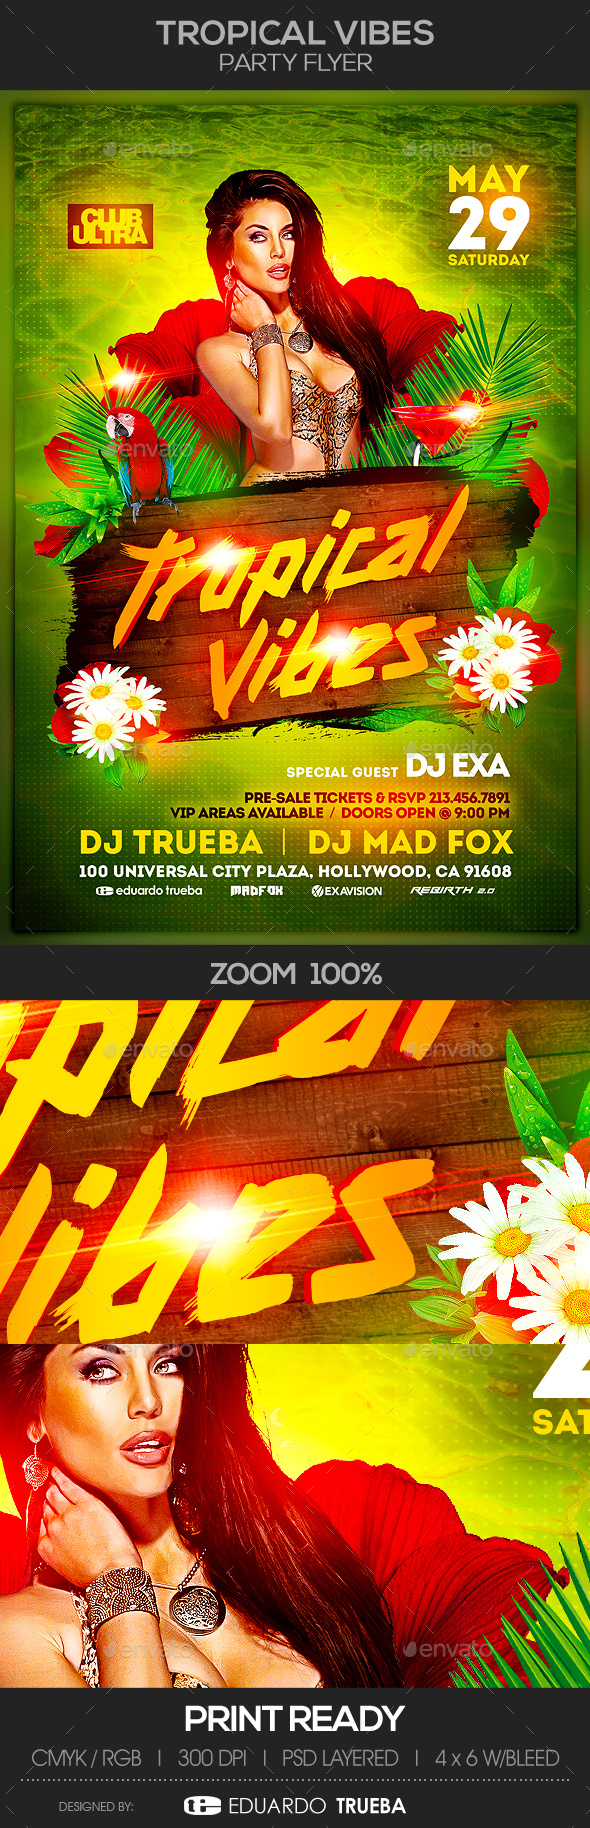 Tropical Vibes Party Flyer - Clubs & Parties Events